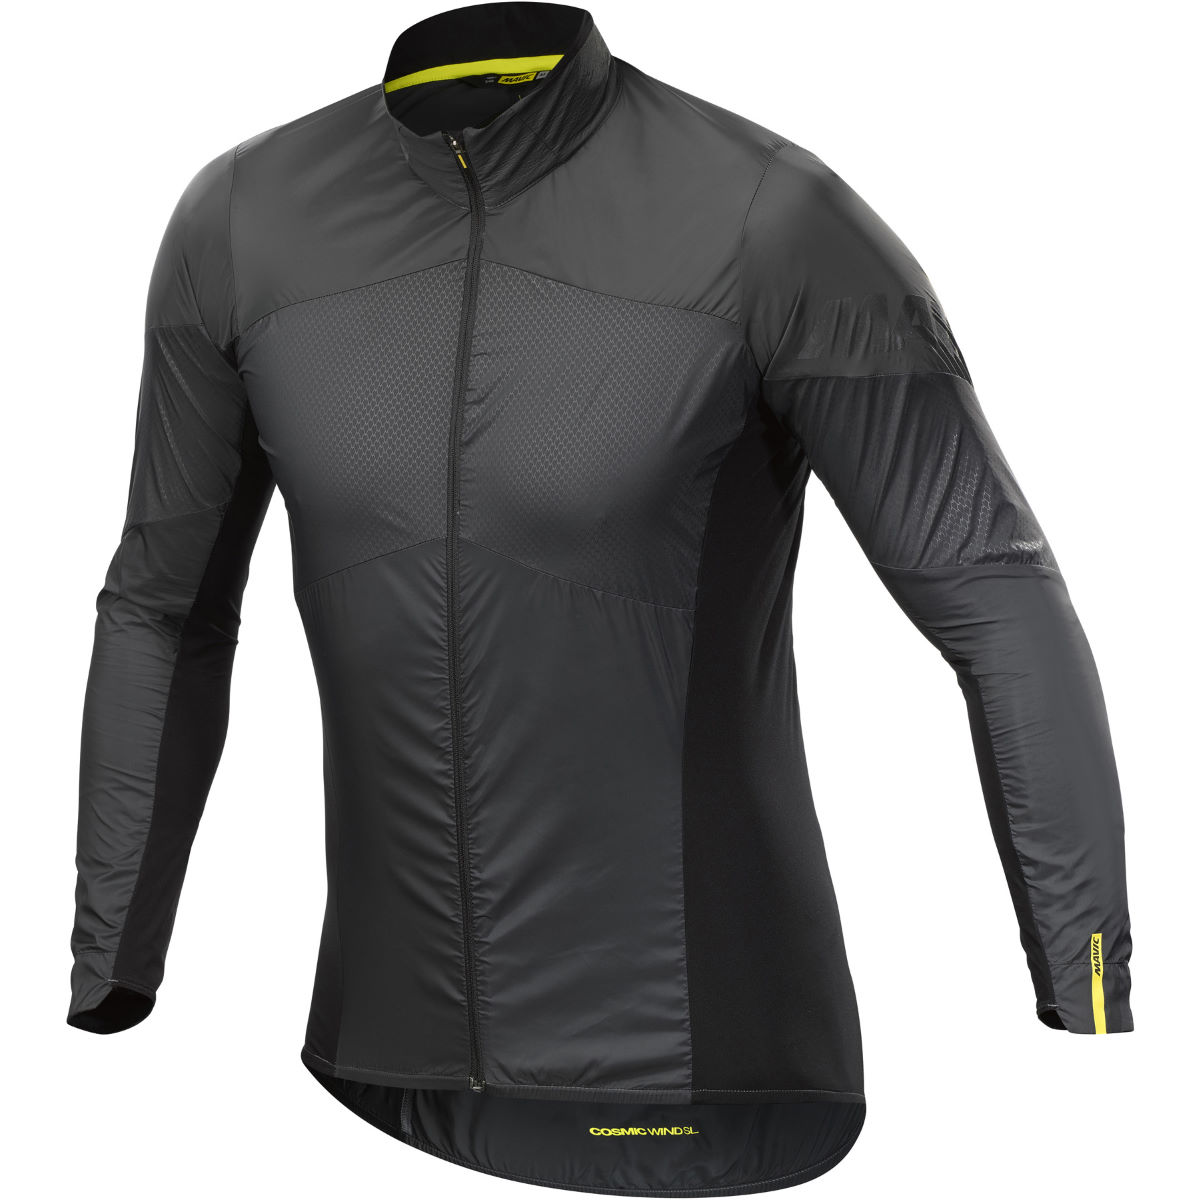 Veste Mavic Cosmic Wind SL - S Black/Pirate Black Vestes